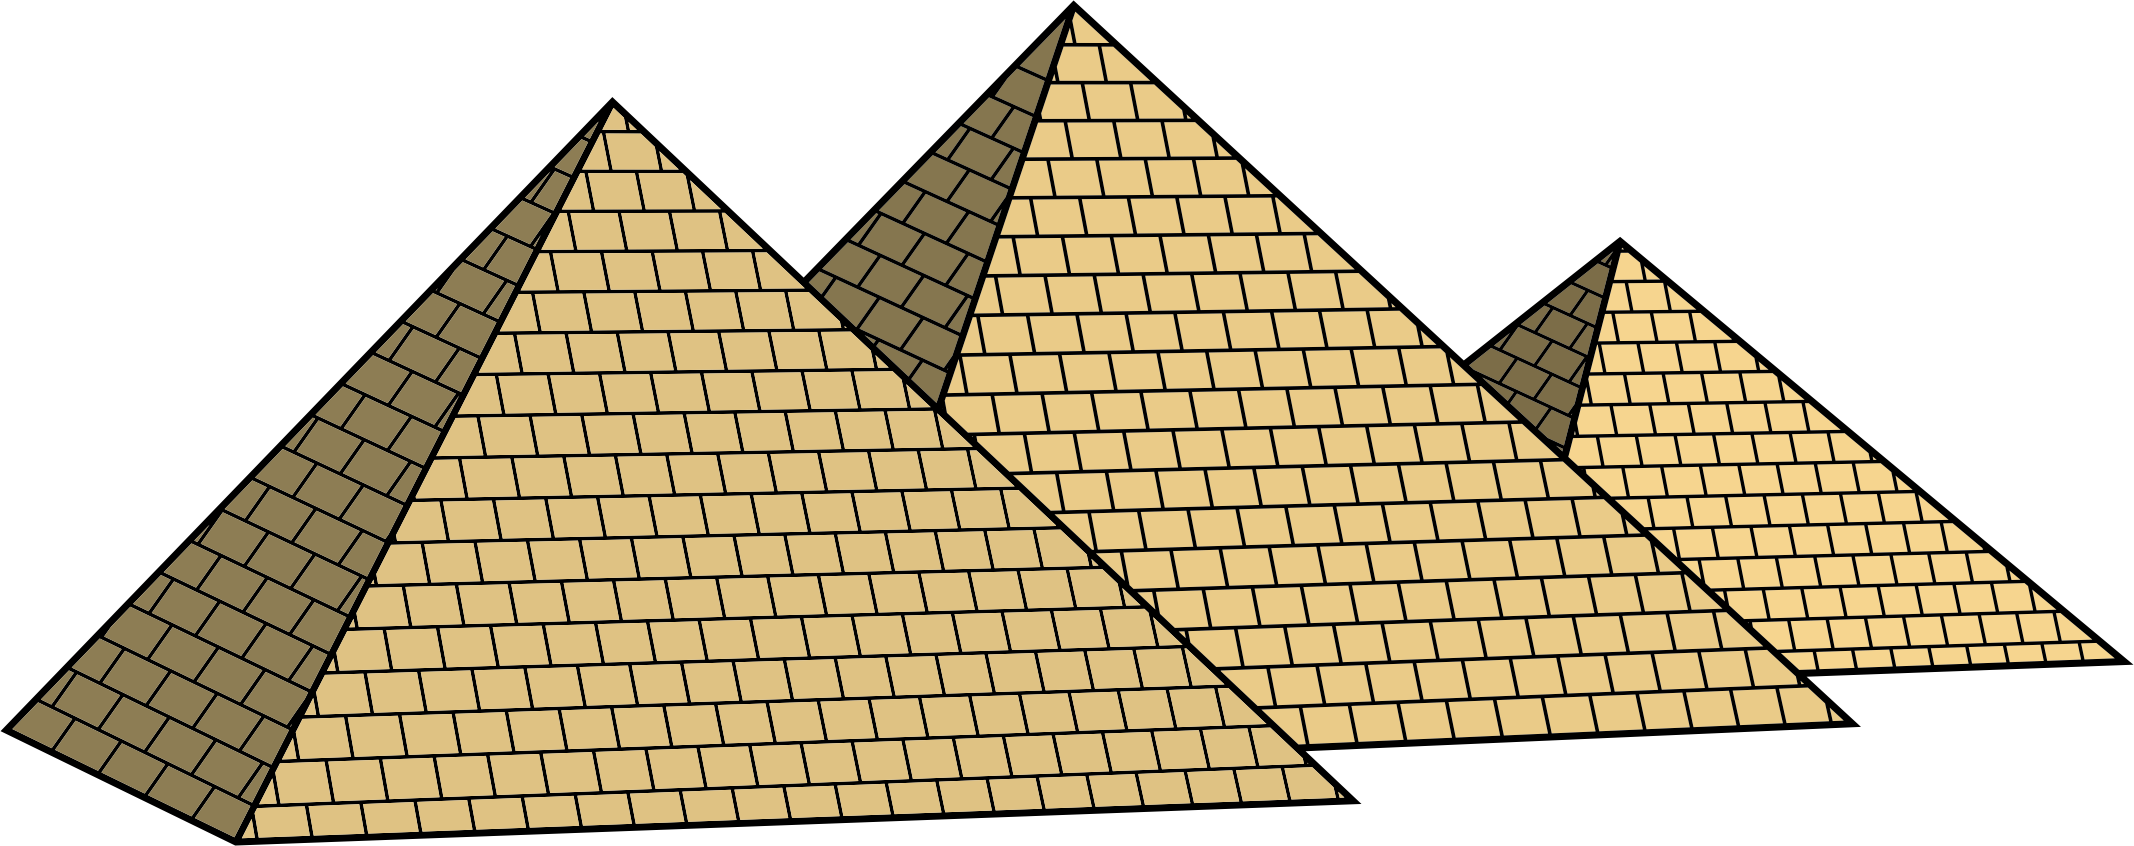 Egypt pyramid clipart picture freeuse download Great Pyramid of Giza Egyptian pyramids Ancient Egypt Clip art ... picture freeuse download